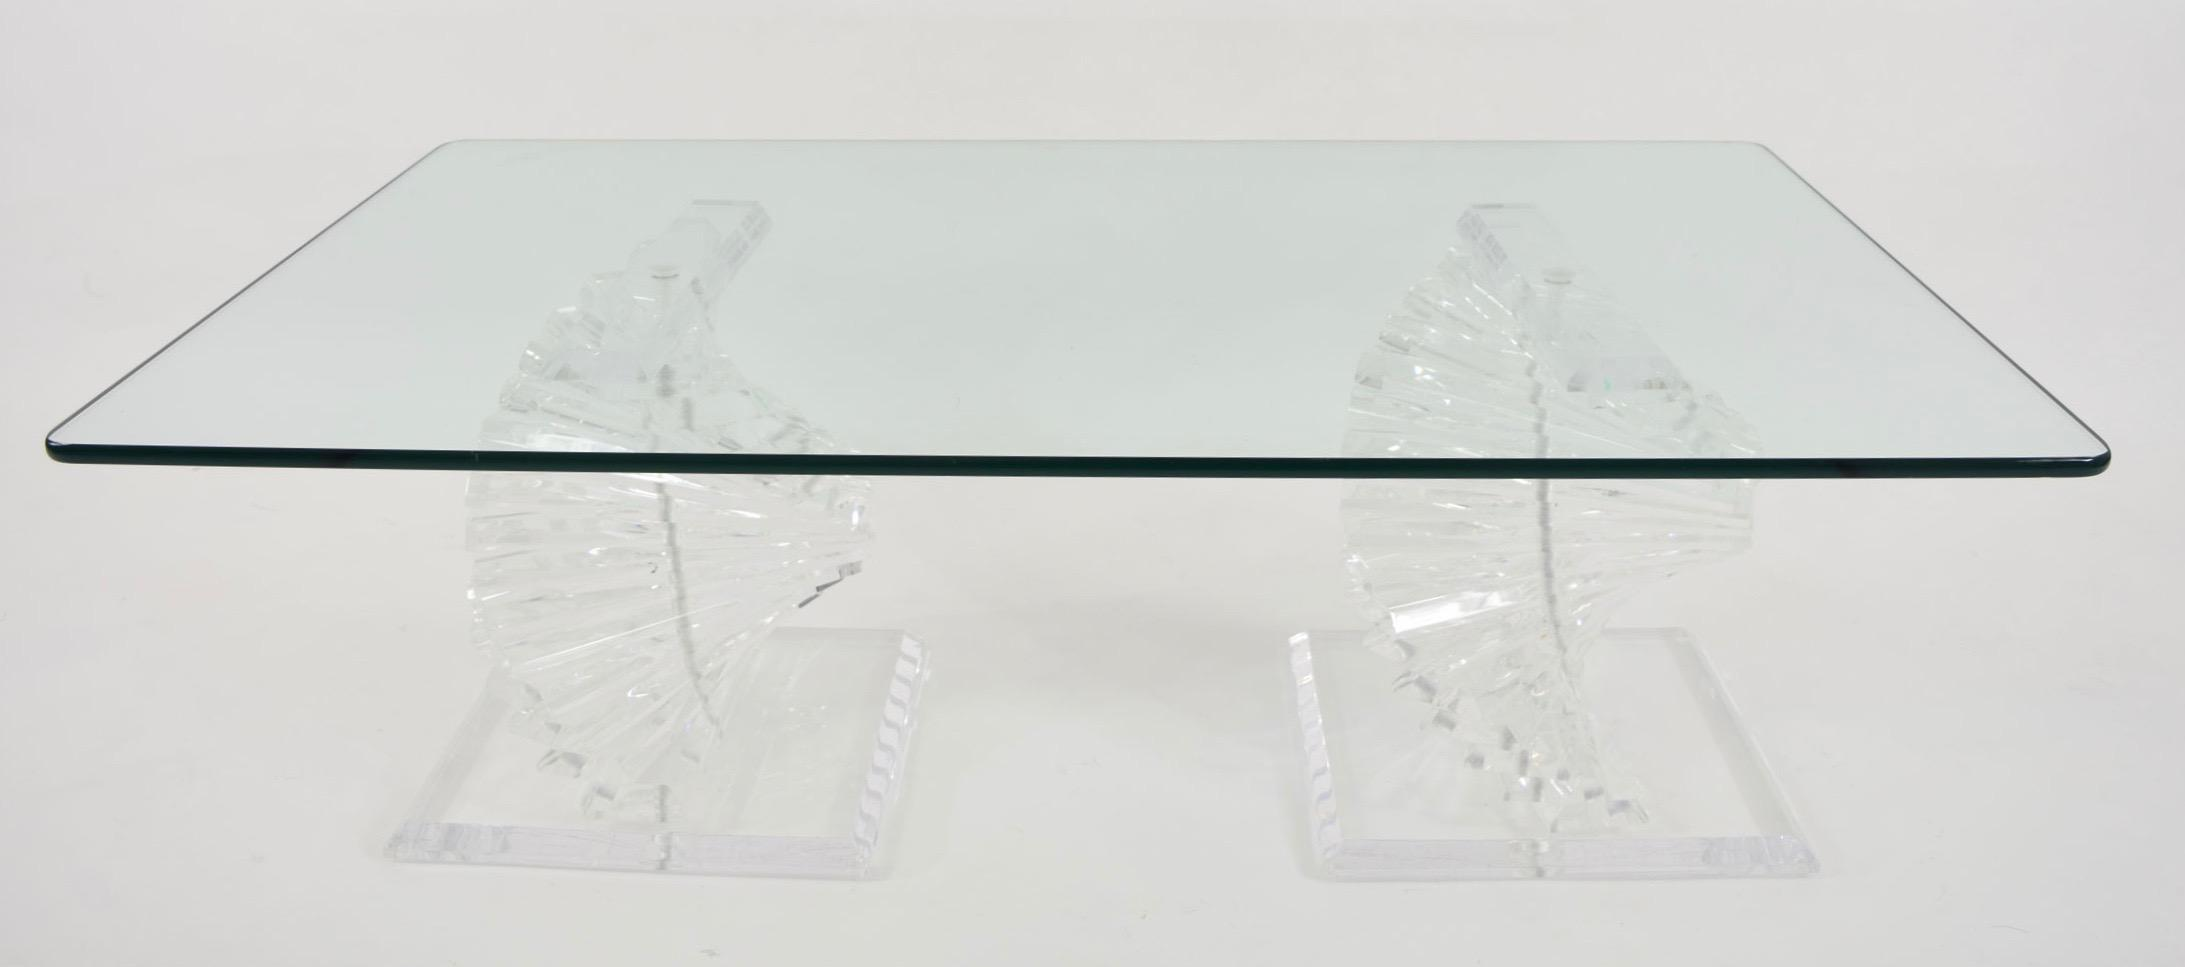 Beautiful Coffee Table With Rectangular Glass Top In A Rounded Pencil Edge.  Lucite Bases Are